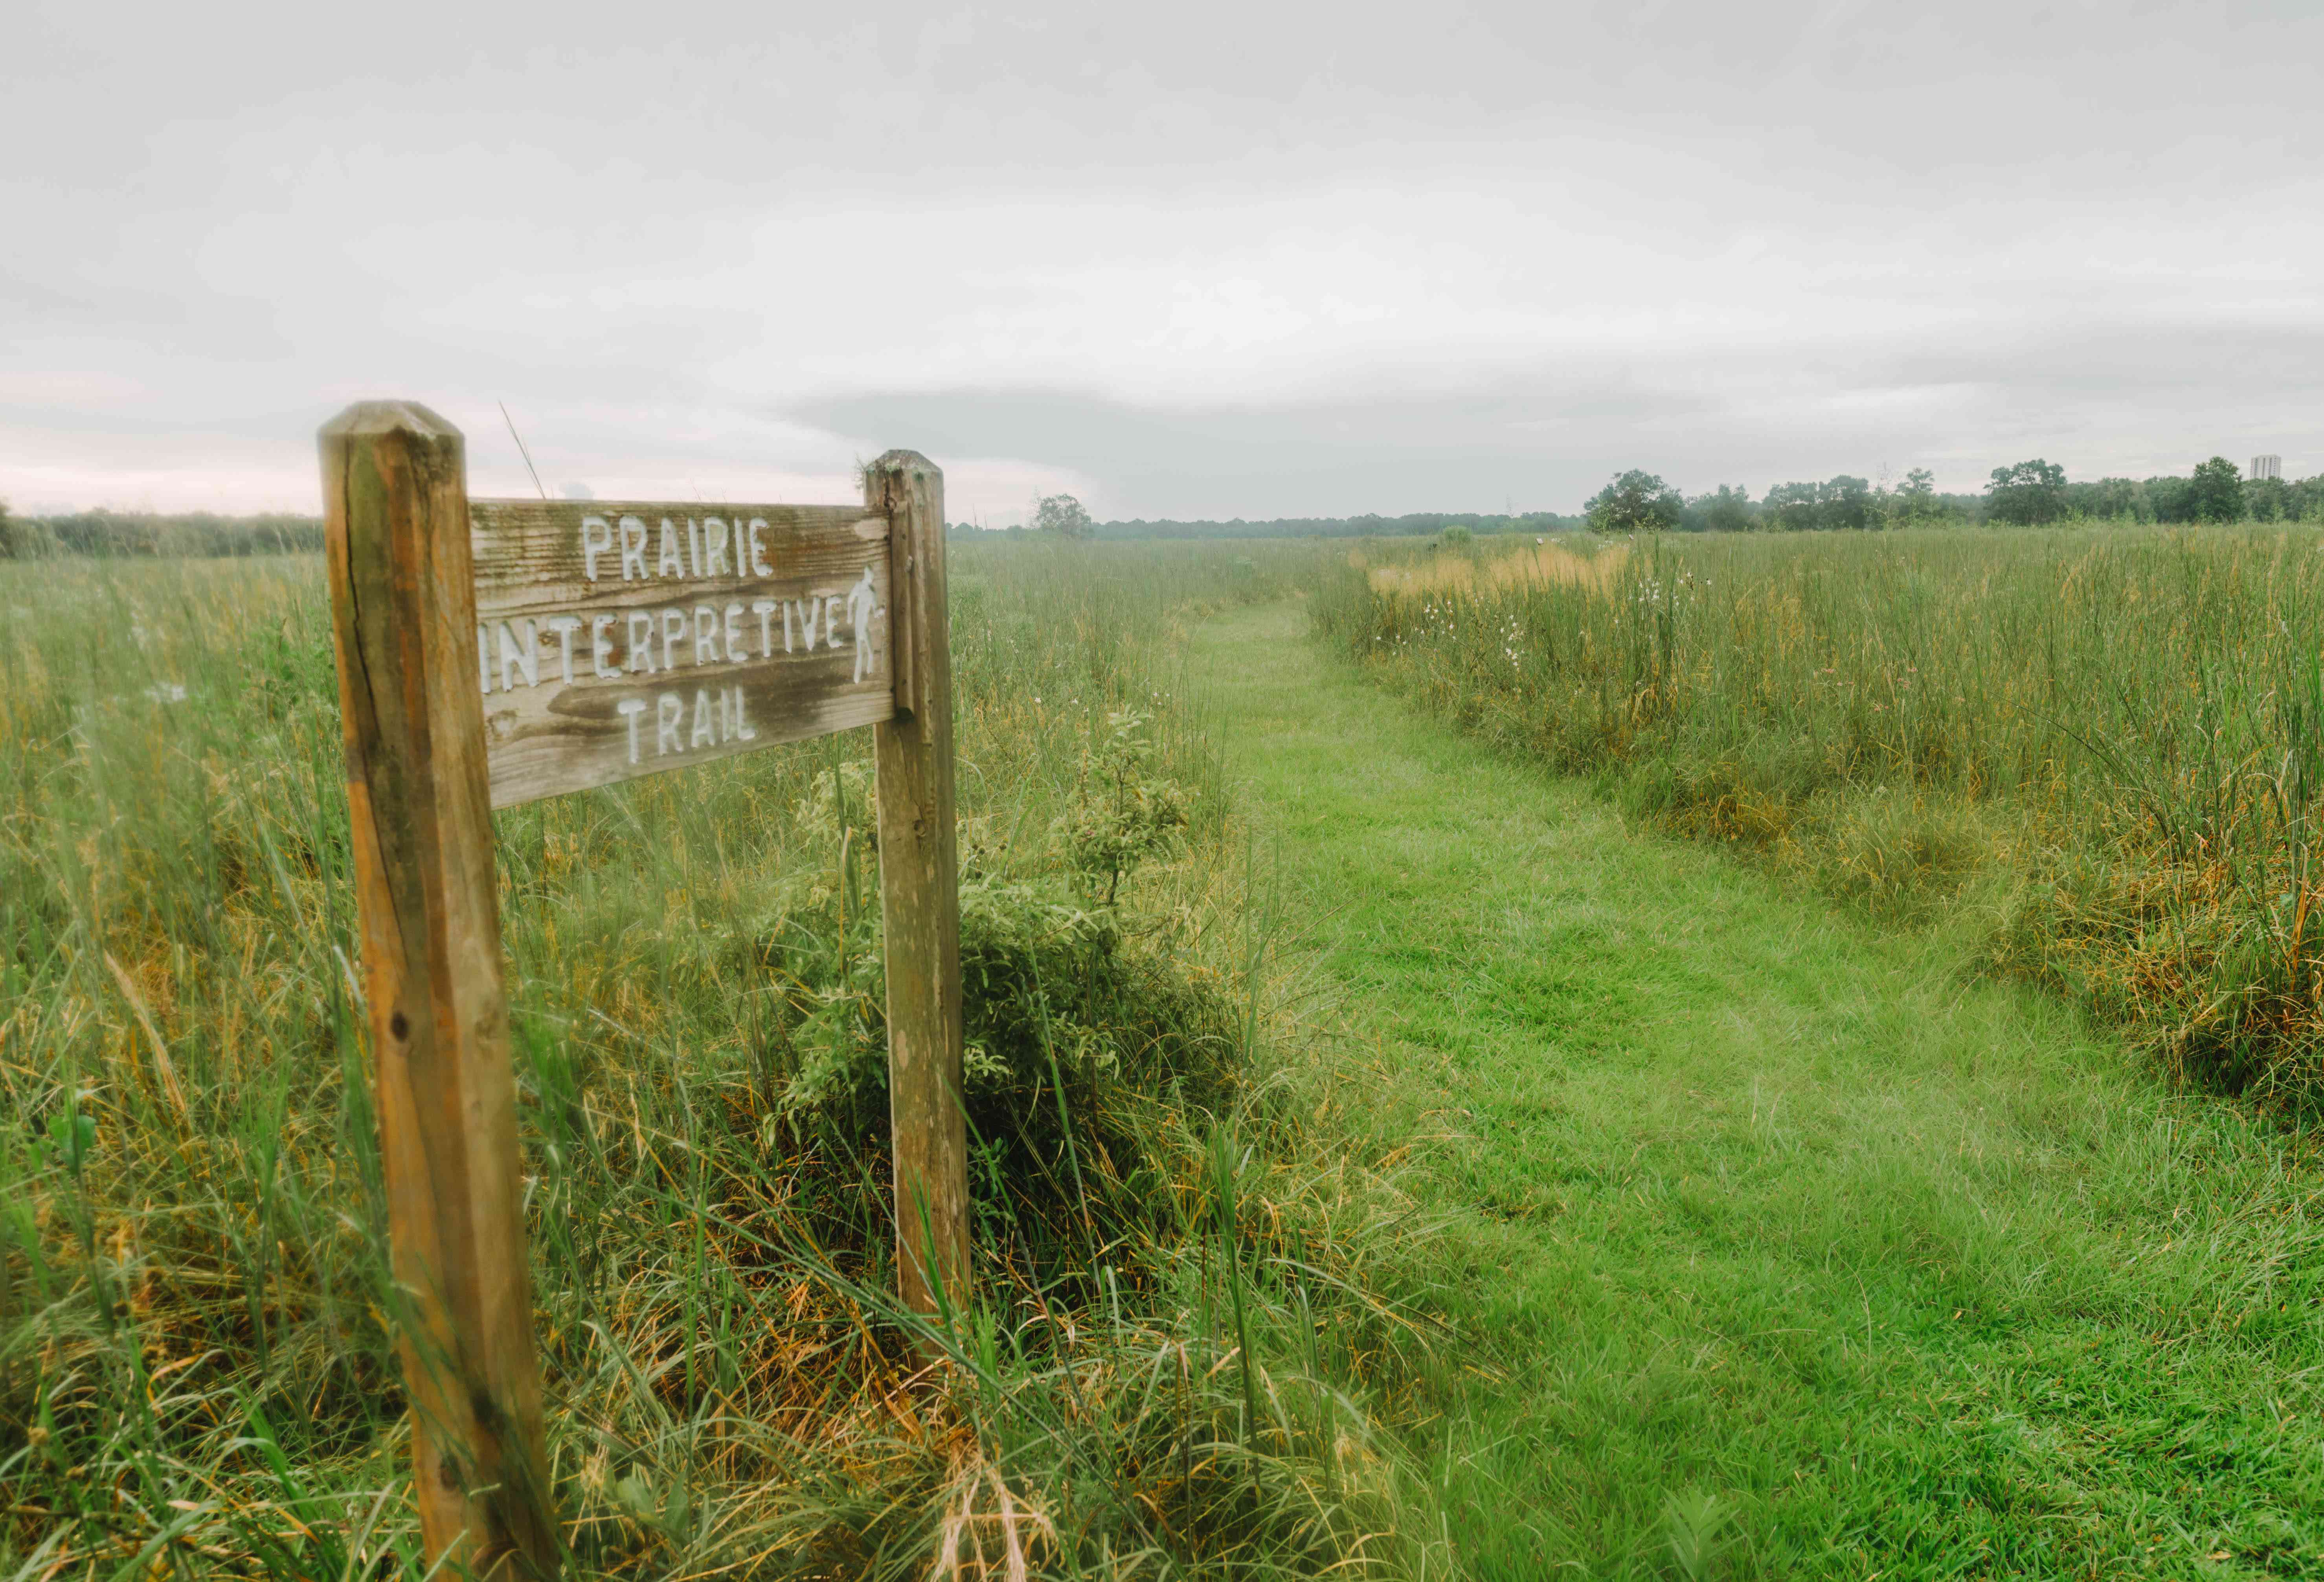 A grassy field with a sign for the Prairie Interpretive Trail